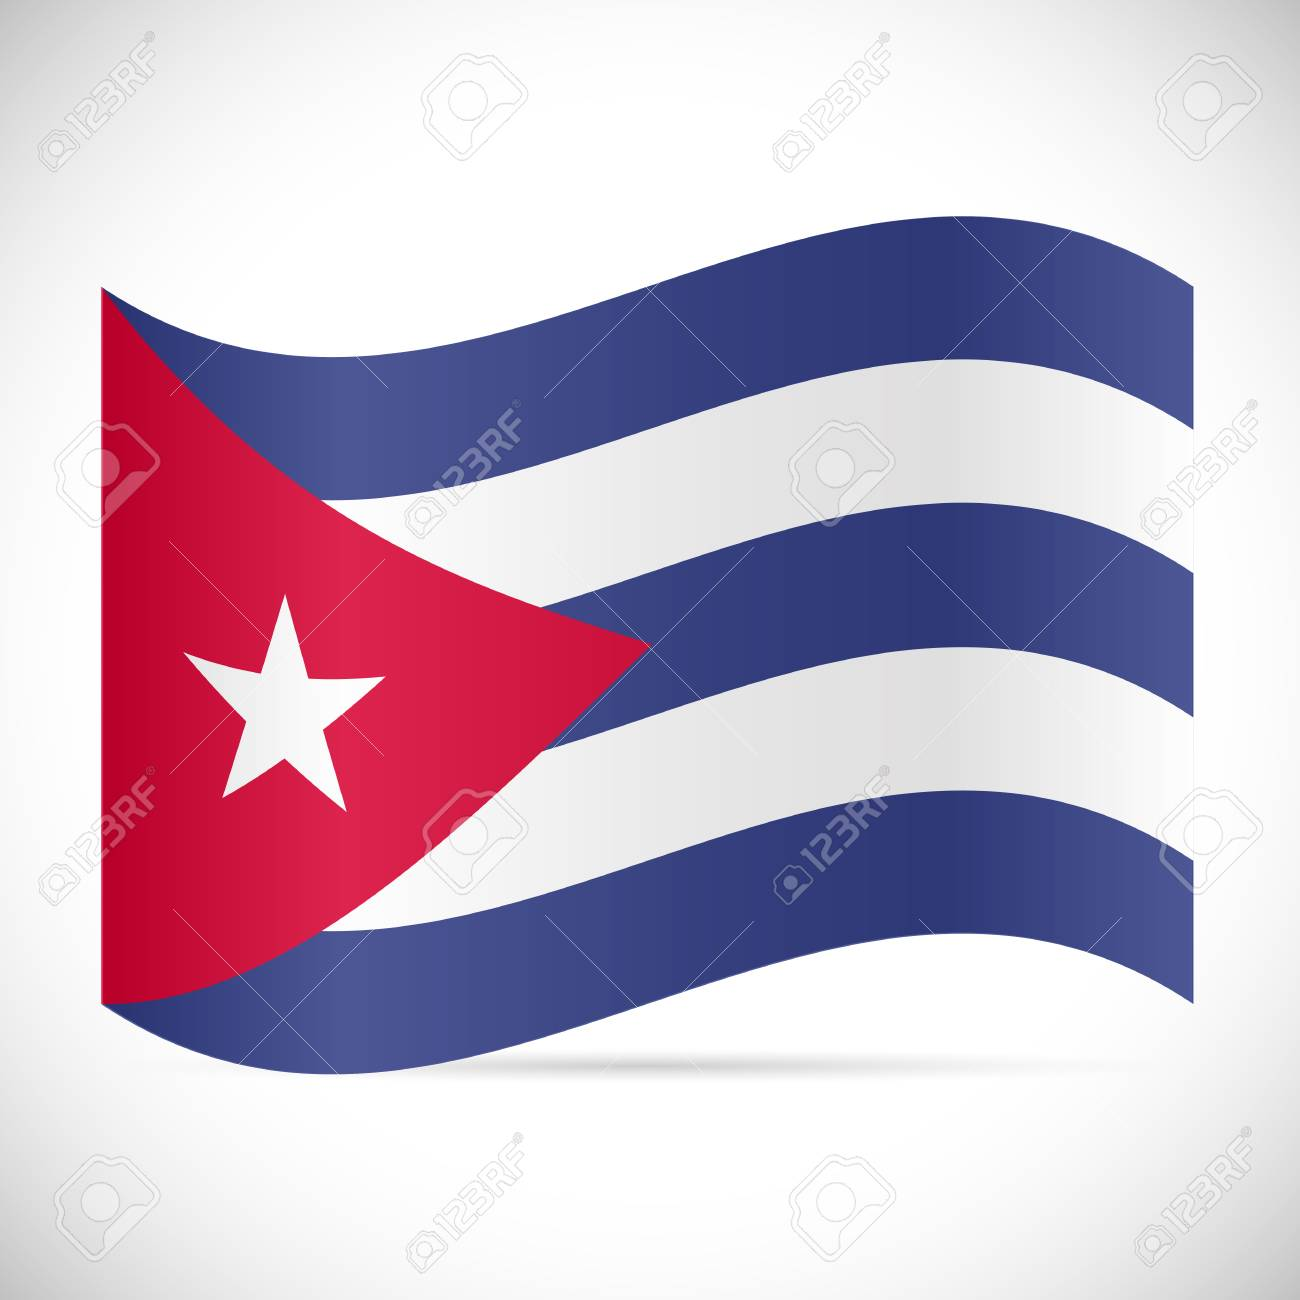 Illustration of the flag of Cuba isolated on a white background. - 97016372